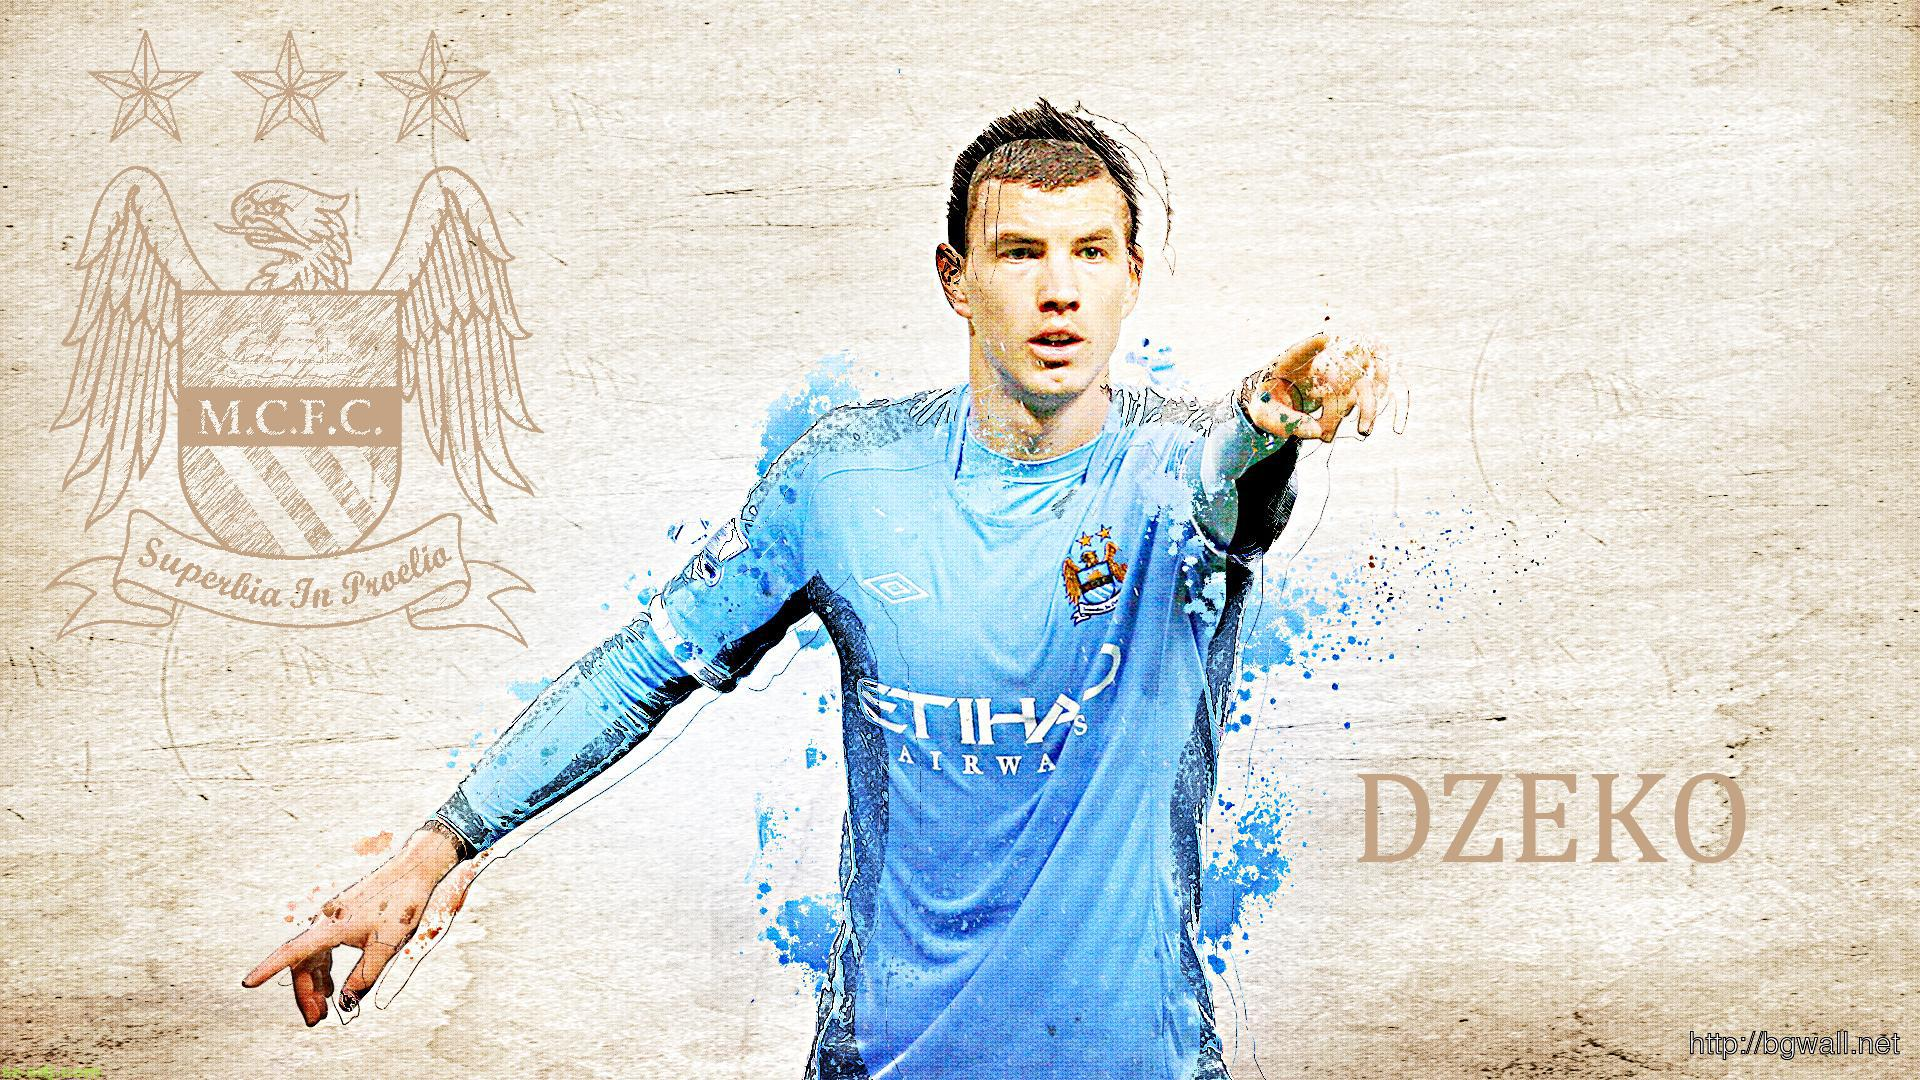 dzeko-art-wallpaper-hd